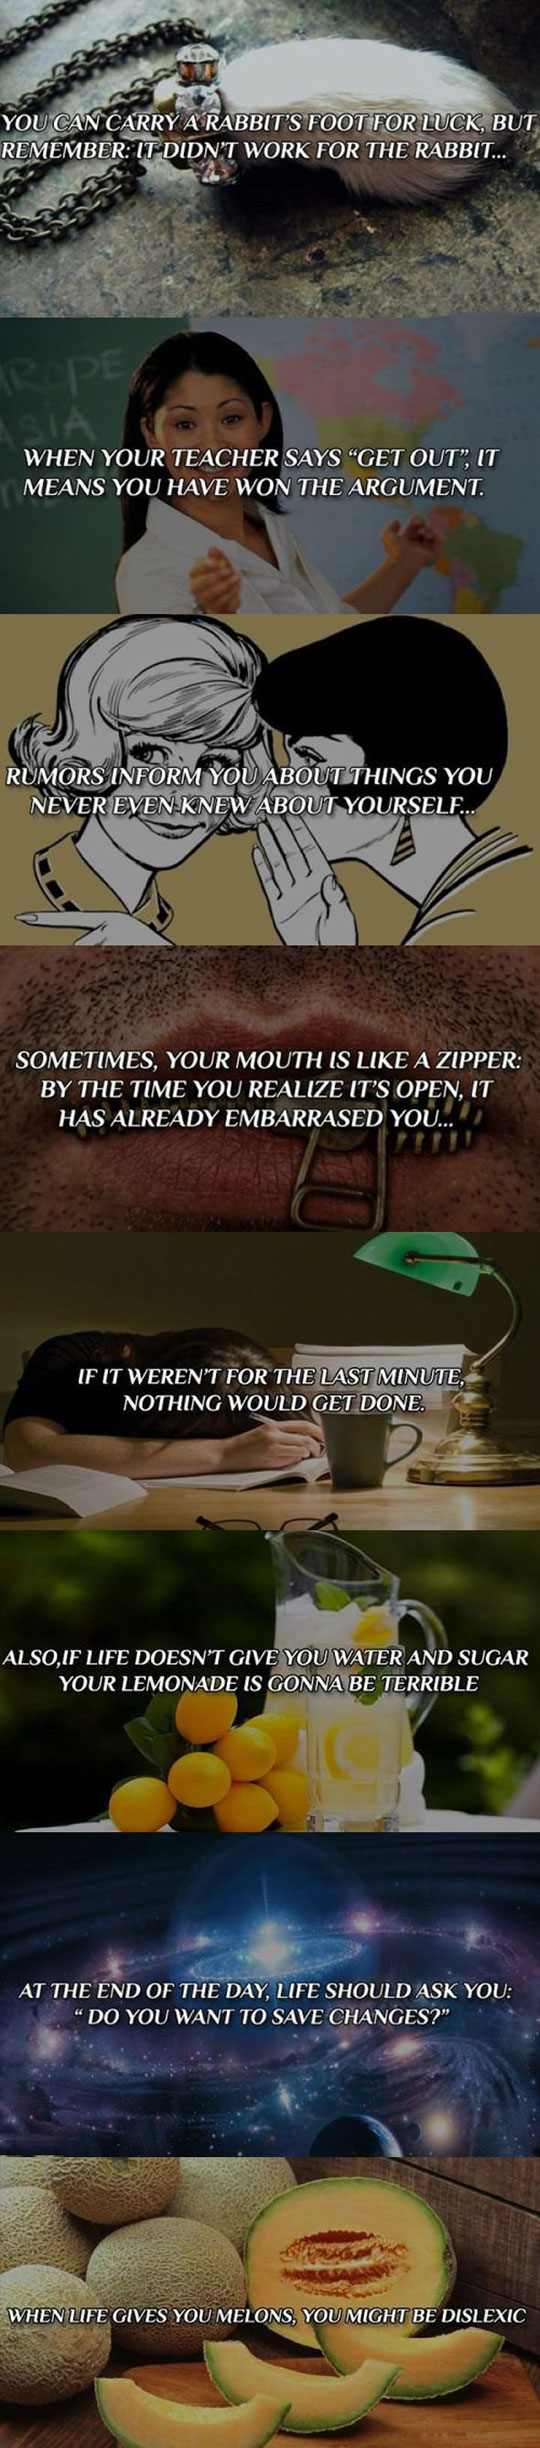 Funny philosophy quotes that make you think...